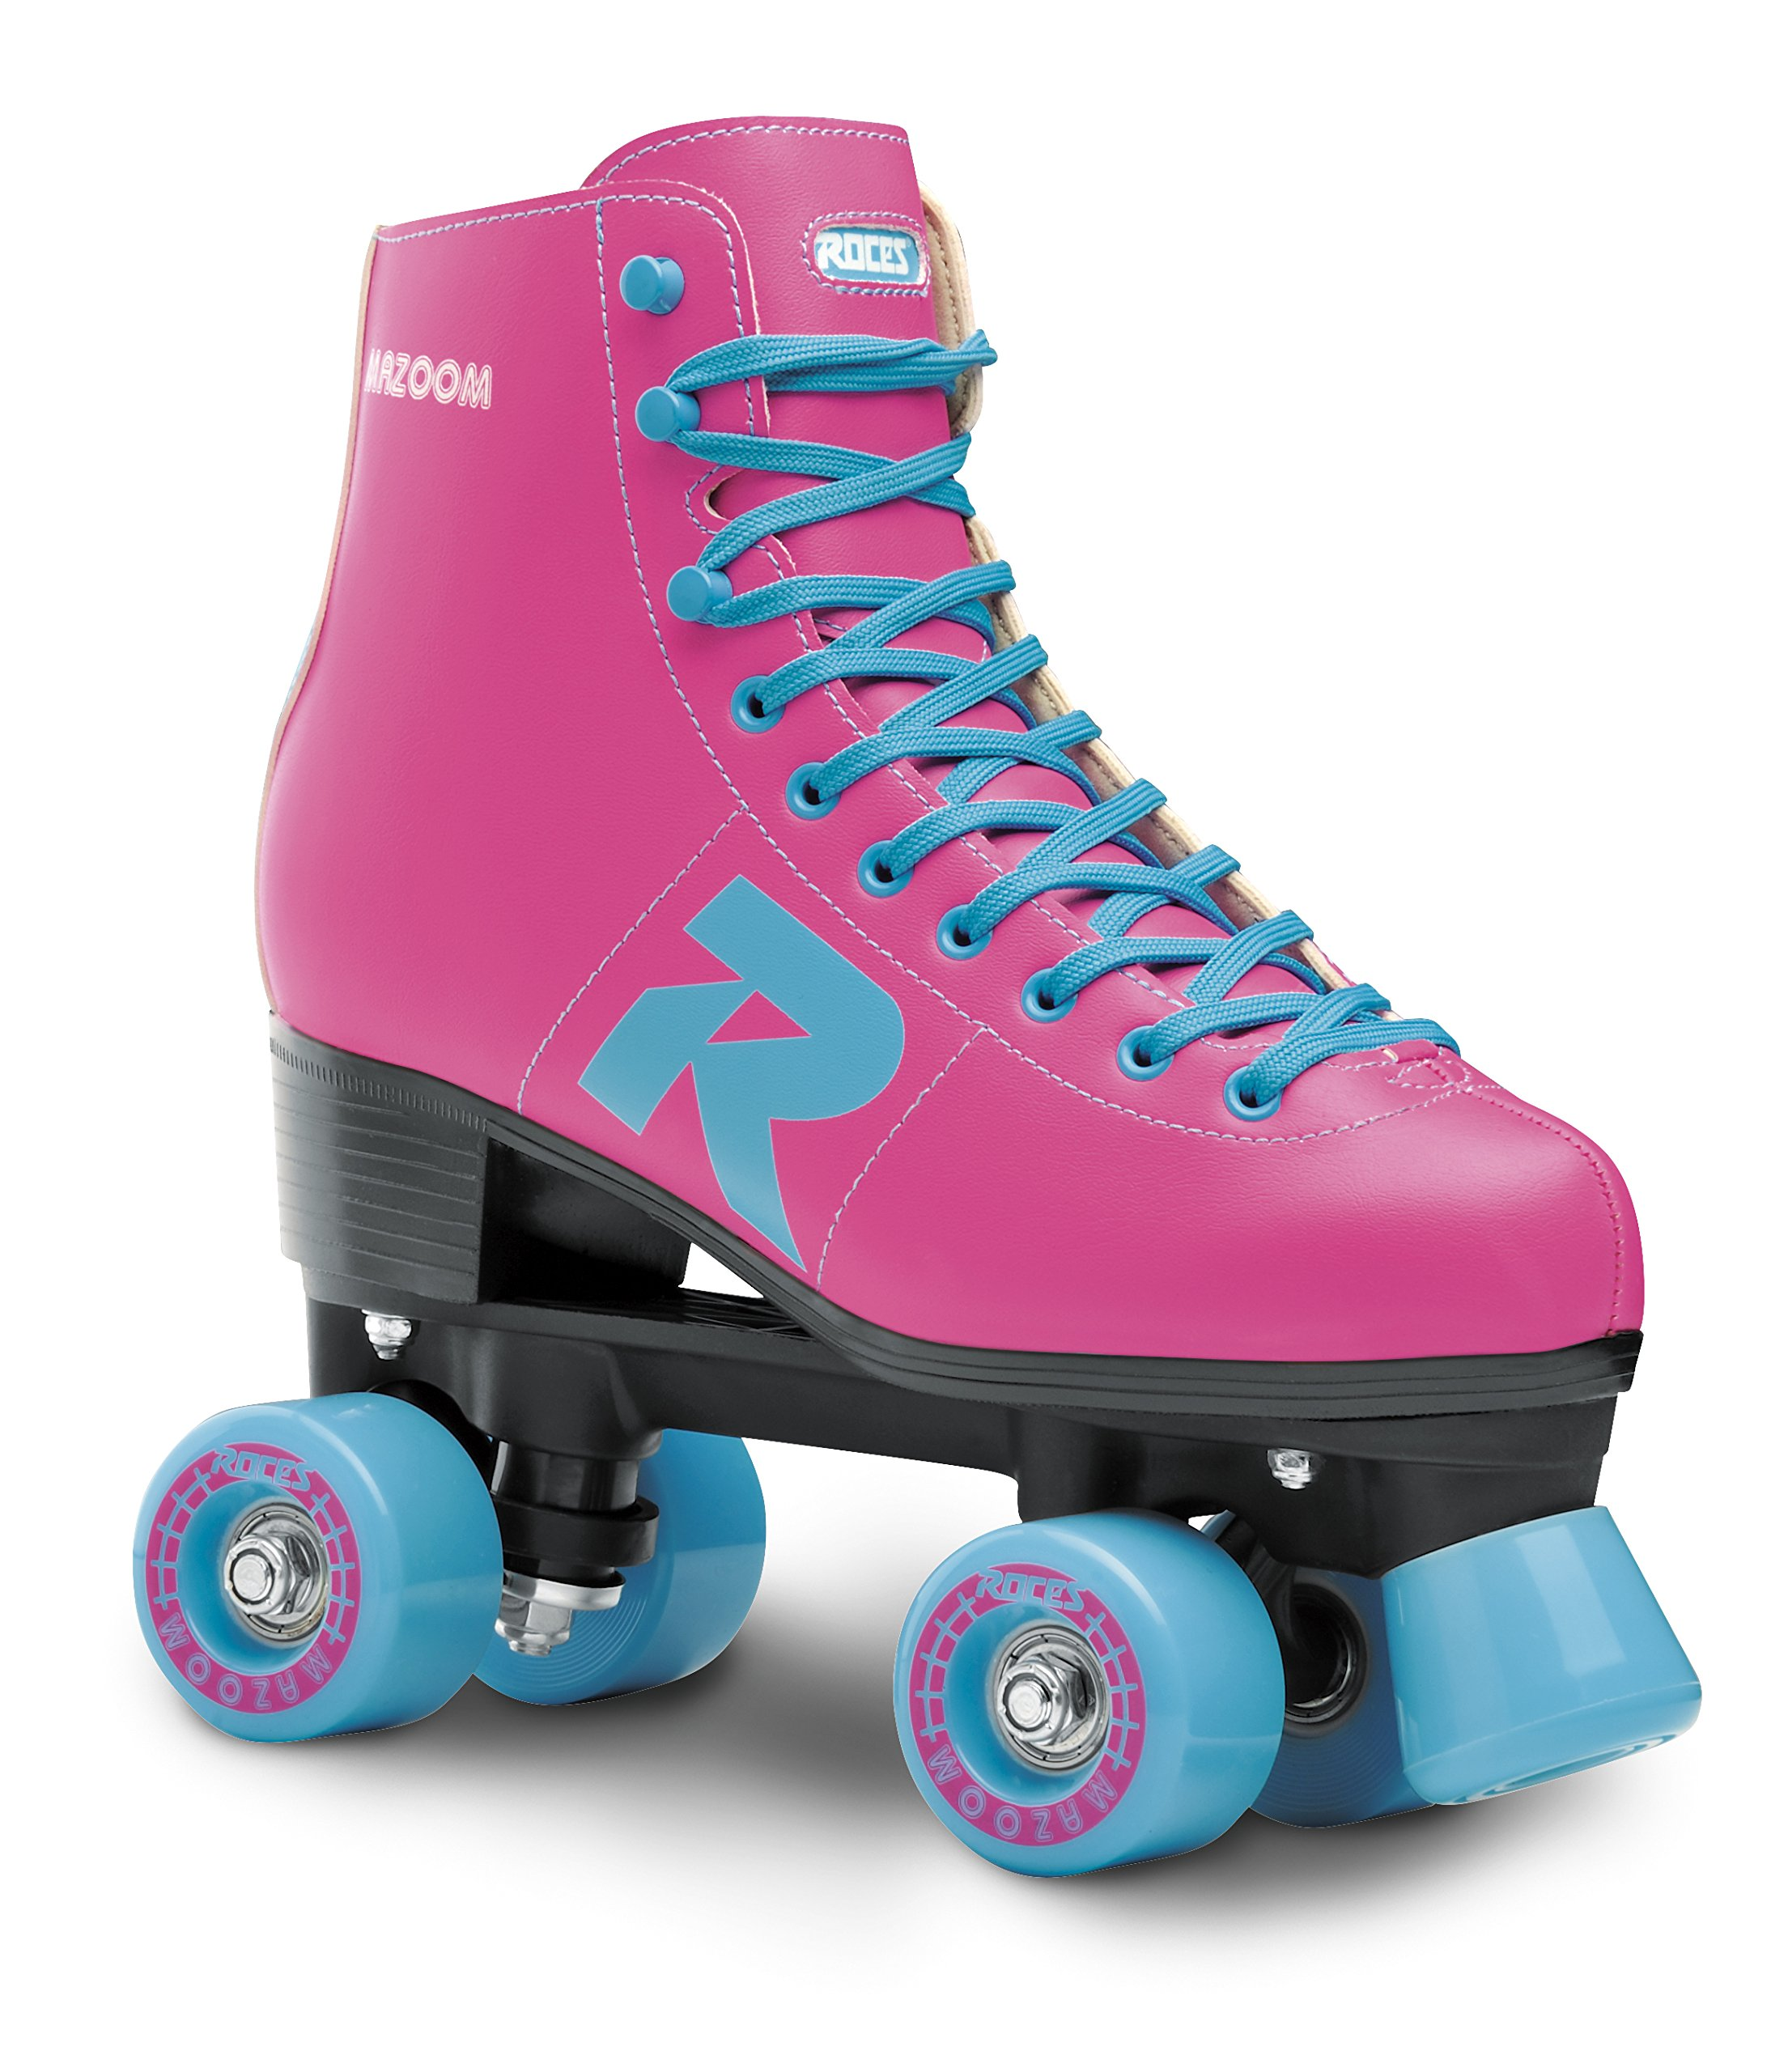 Roces 550064 Model Mazoom Roller Skate, US 7M/9W, Pink by Roces